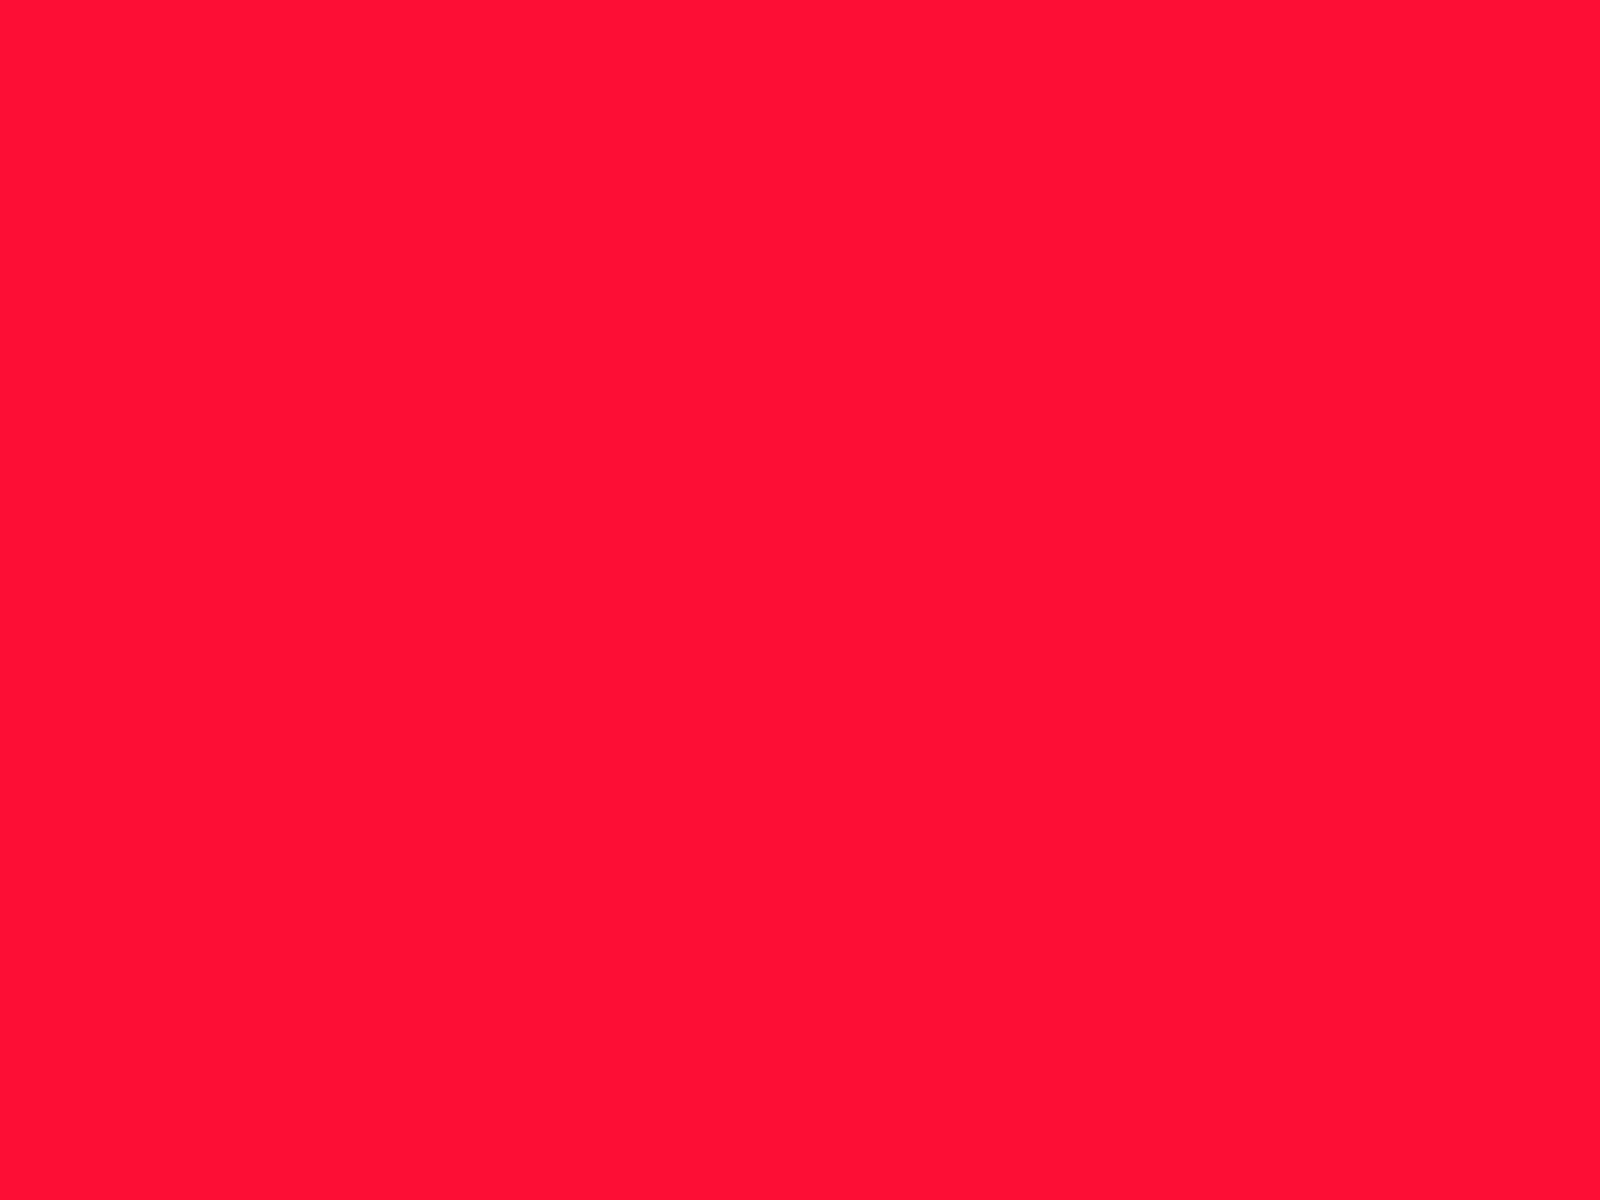 1600x1200 Scarlet Crayola Solid Color Background